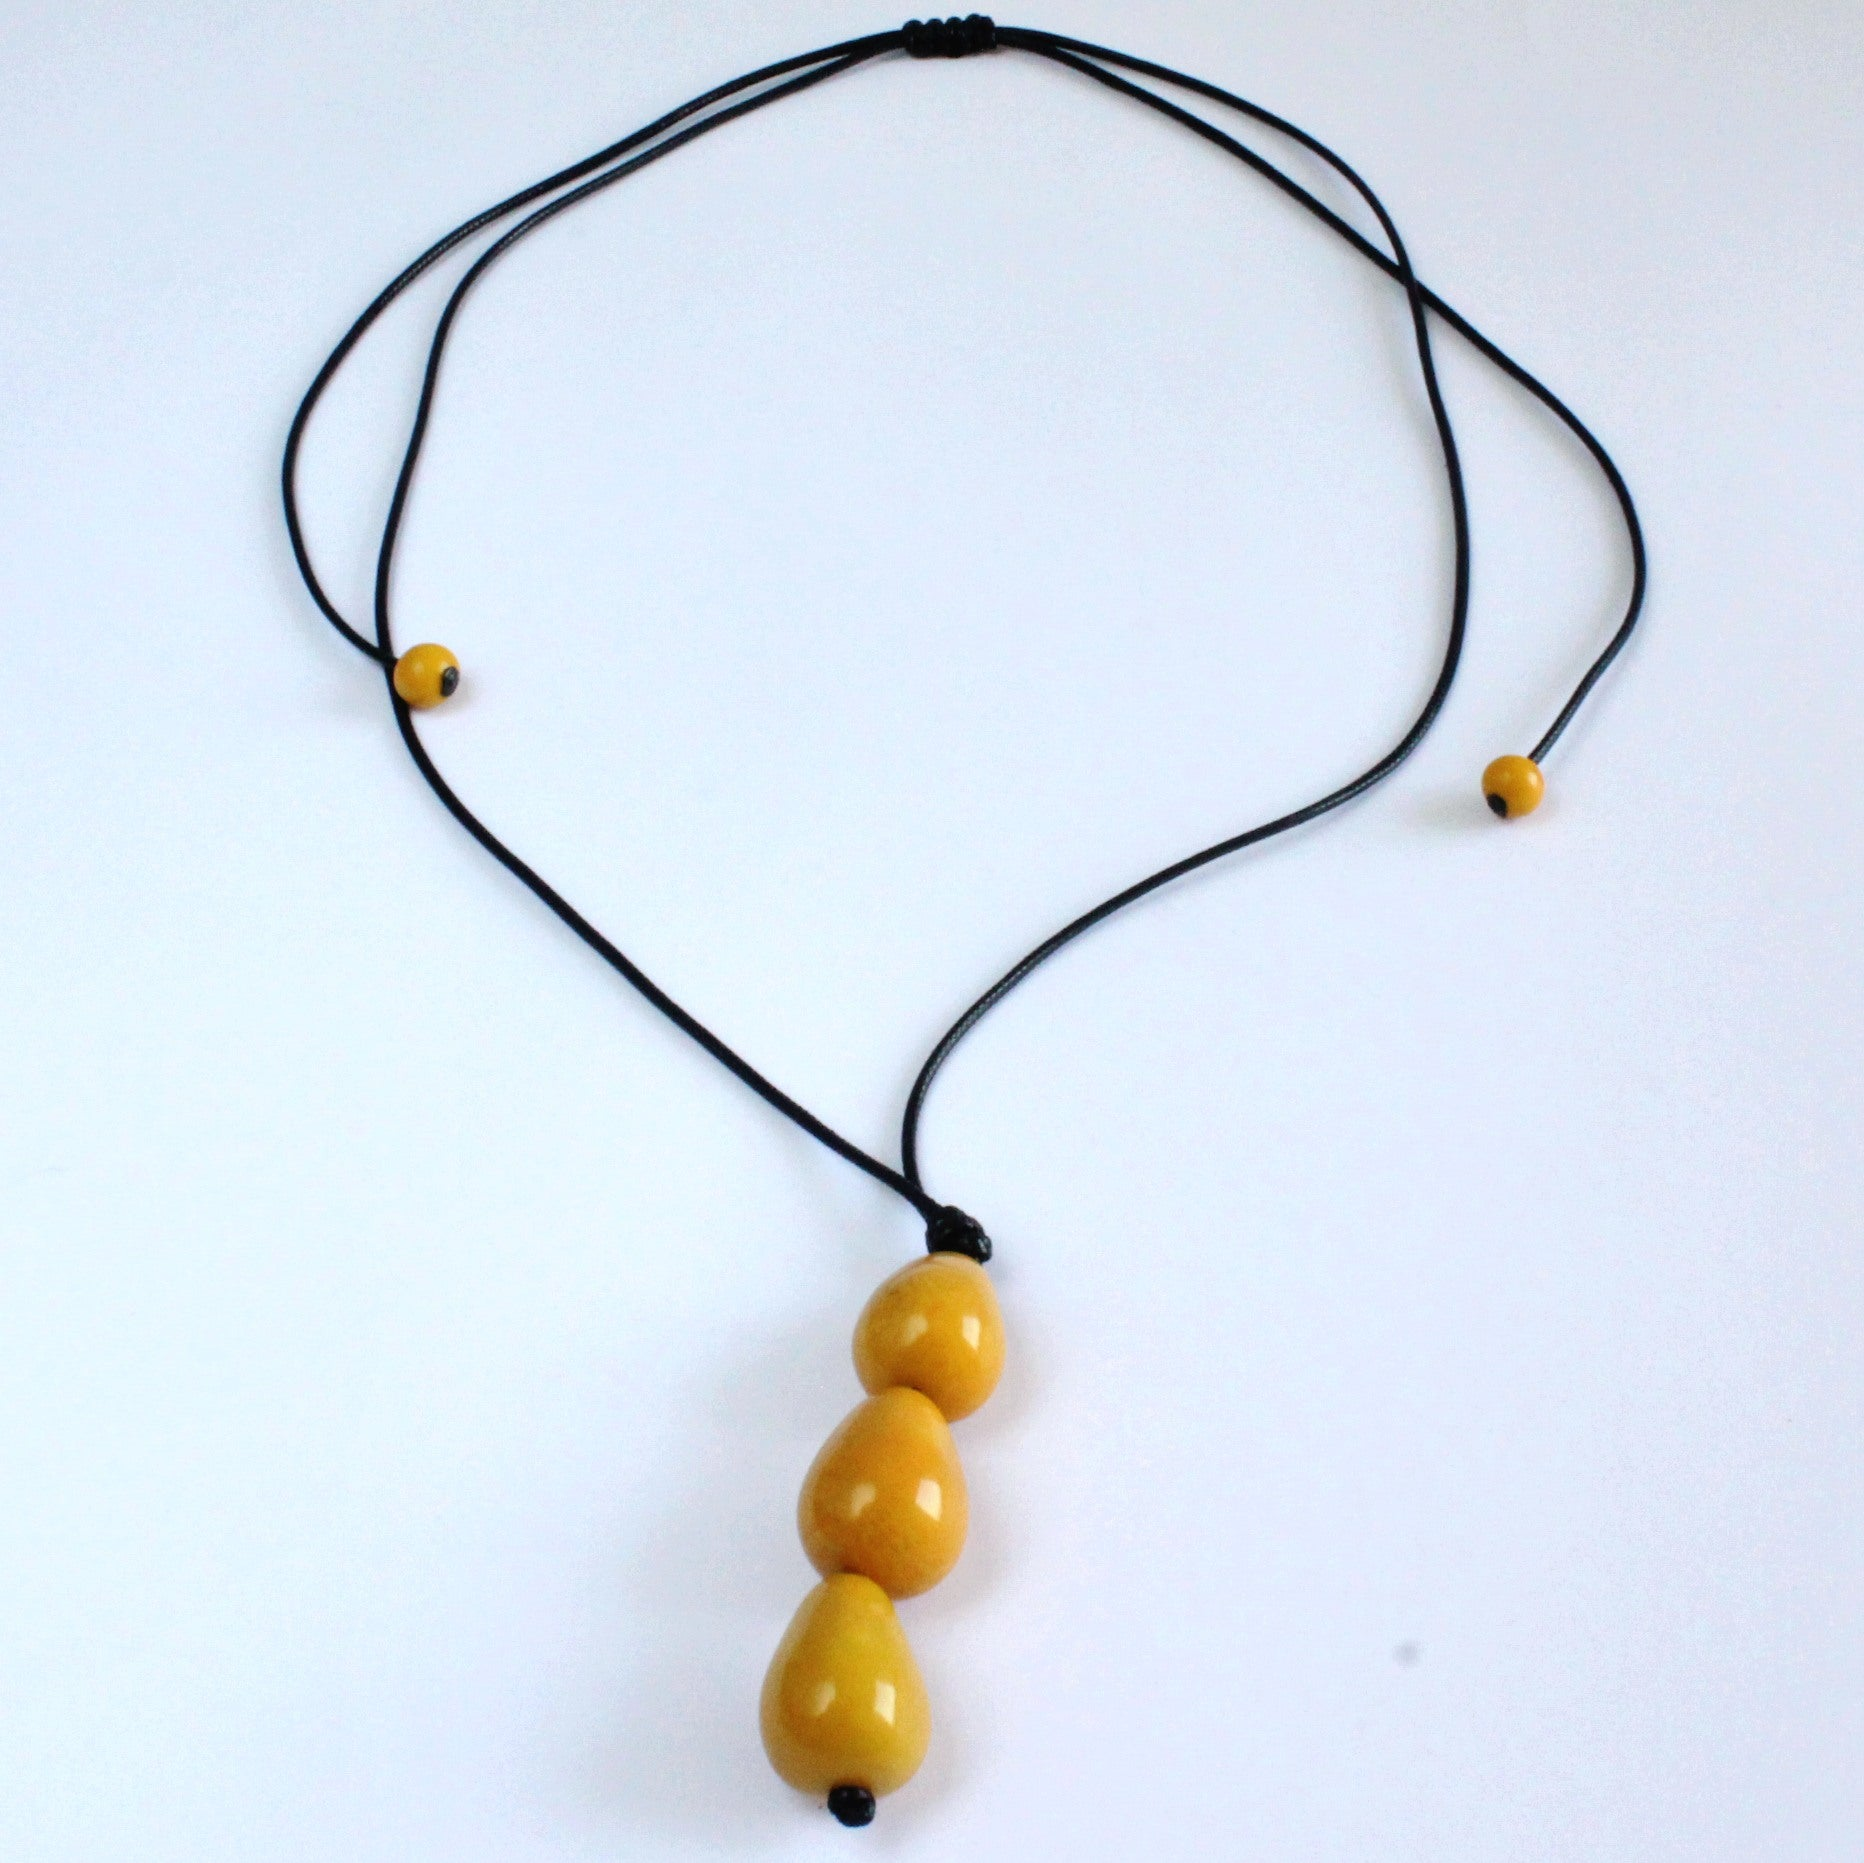 Necklace, handmade, sustainable tagua nut, mustard